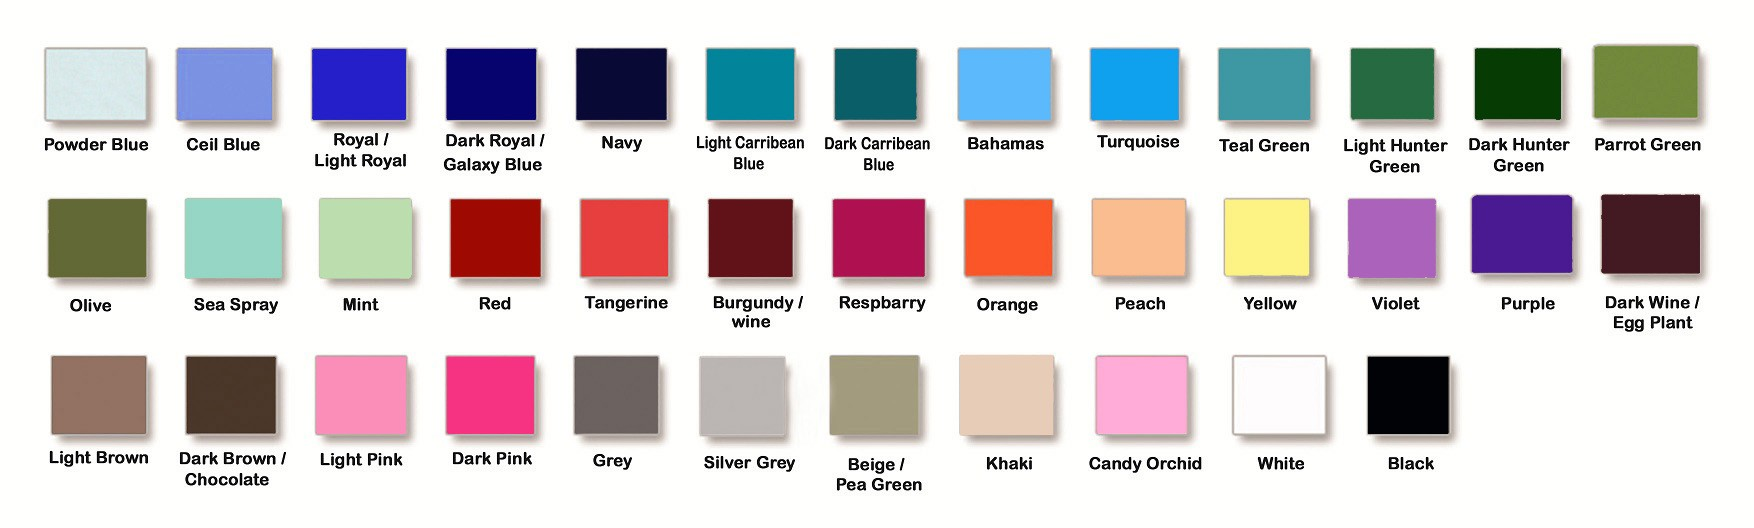 poplin fabric swatches